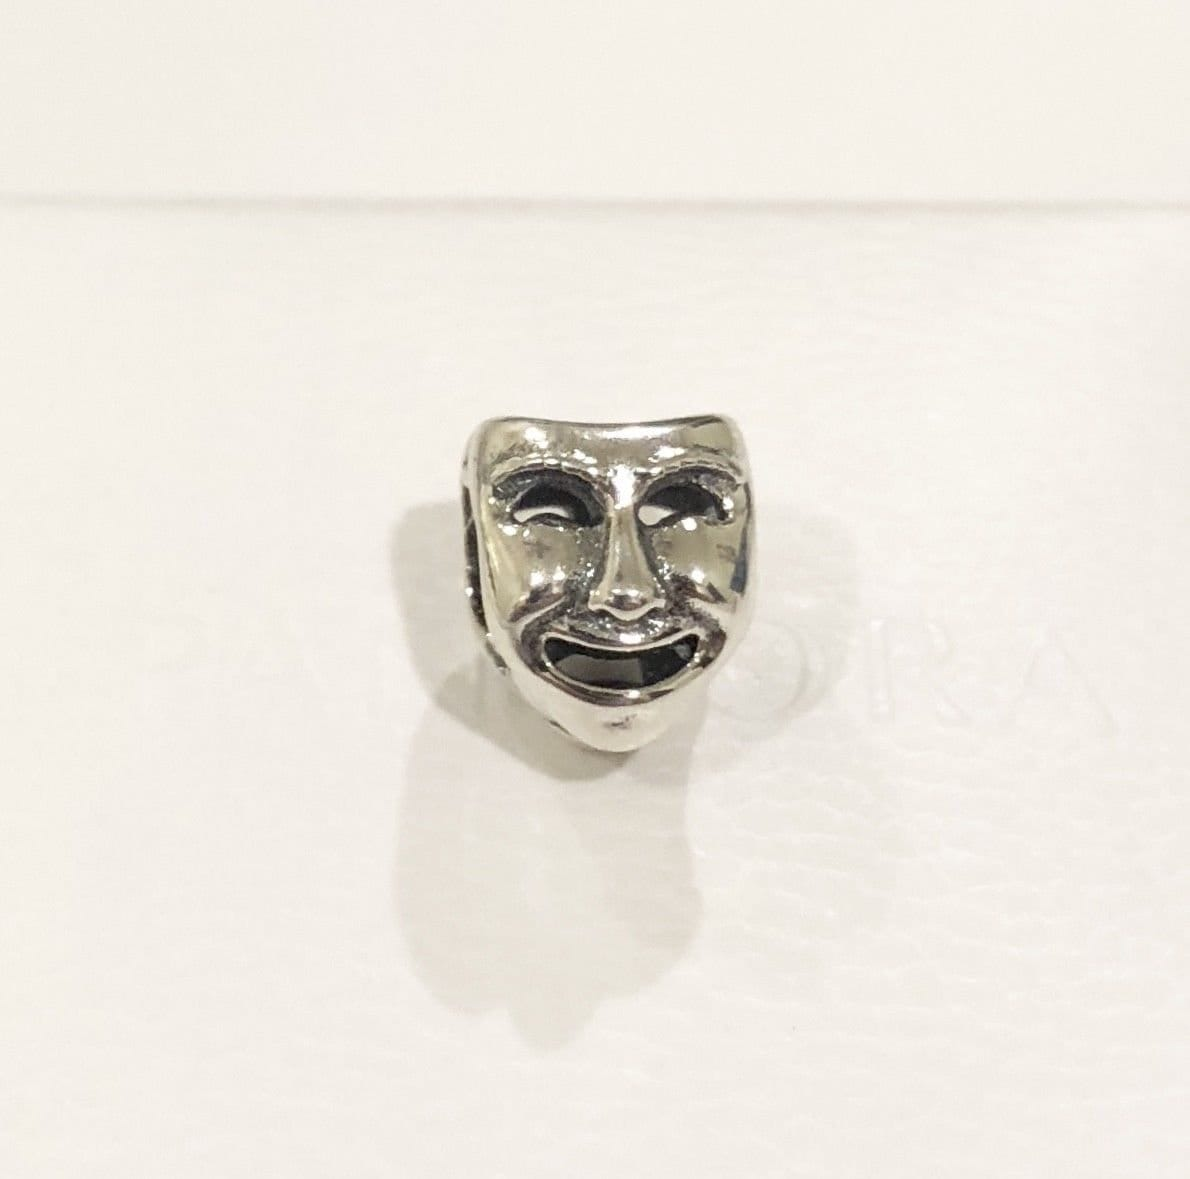 101c1a7f0 Pandora, Bracelet Charms, / THE WORLD'S A STAGE, Theatre Mask, Opera, Bead  / New / s925 Sterling Silver / Fully Stamped